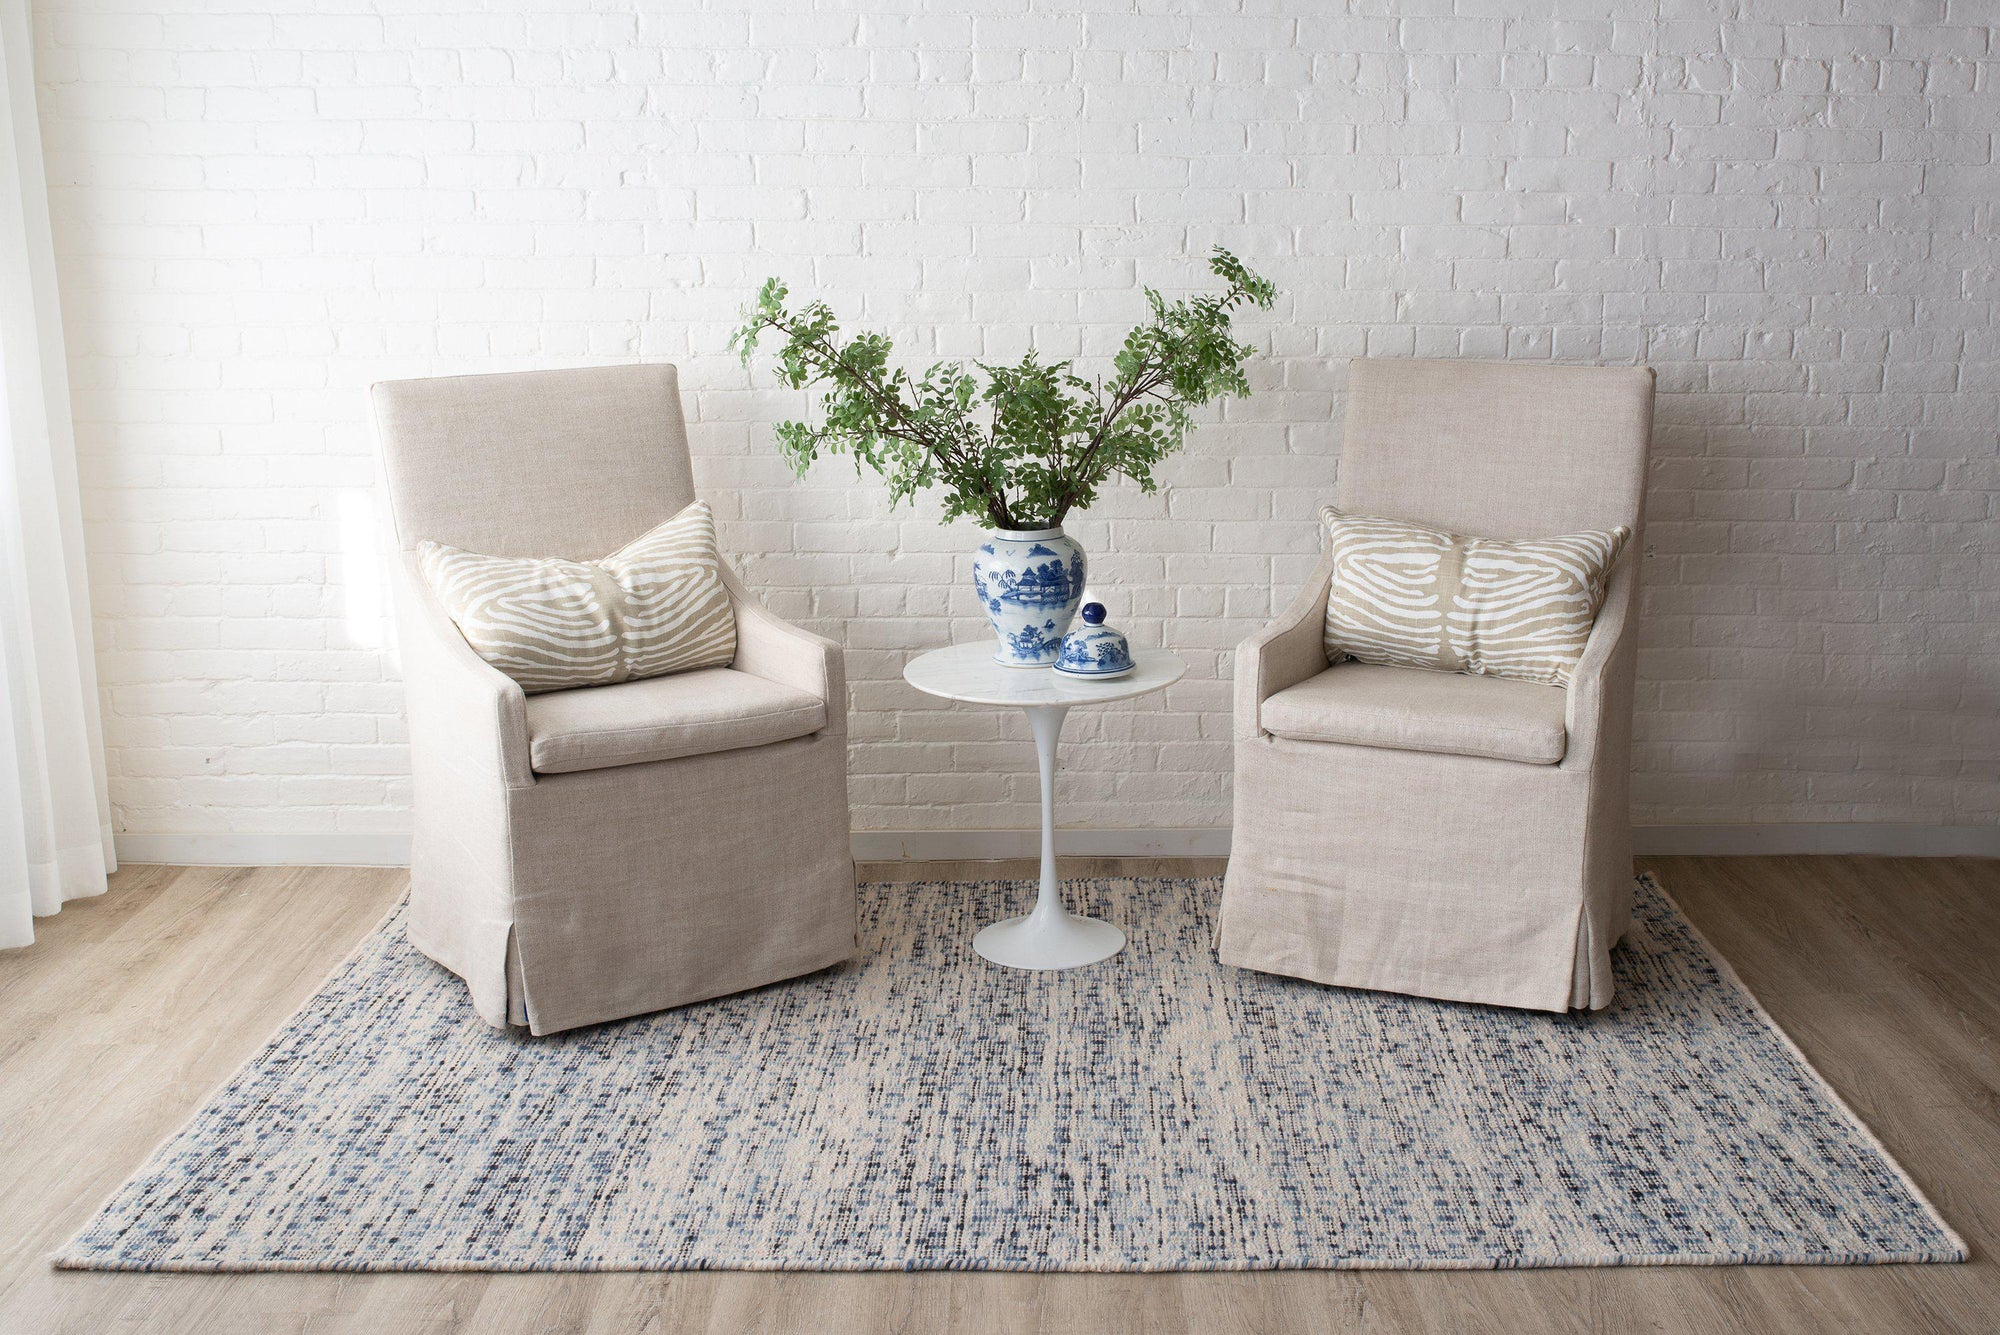 Erin Gates Dartmouth DRT-1 Bartlett Blue Area Rug ( 9' X 12' )